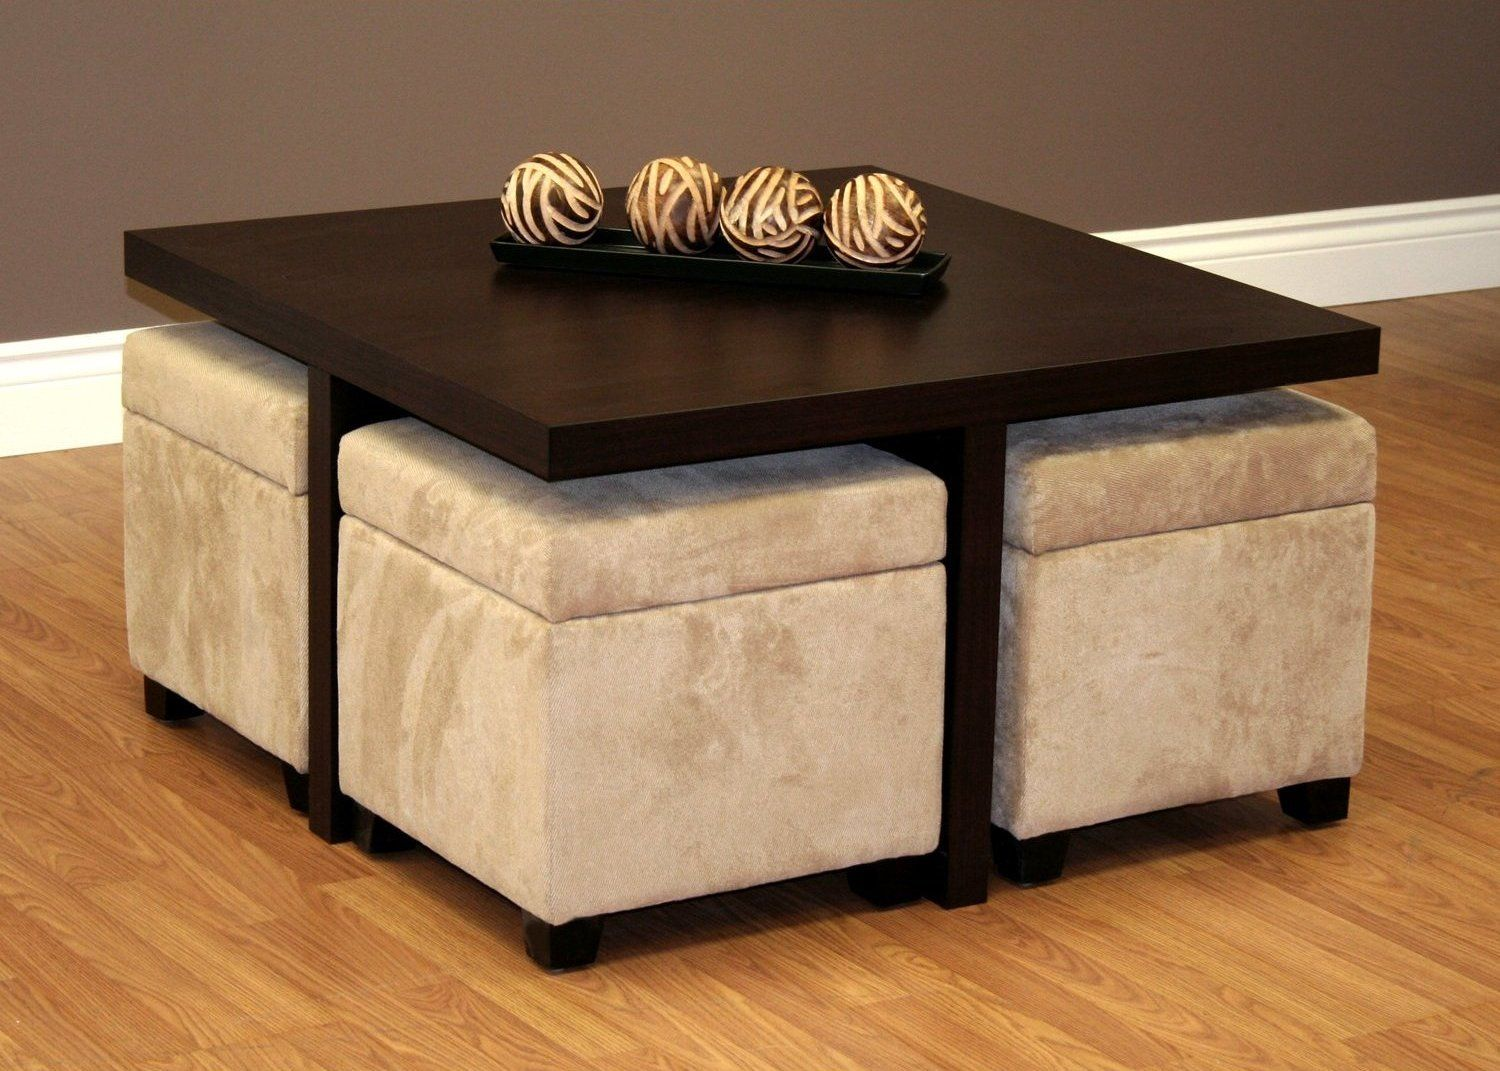 coffee table with stools underneath | beach house furniture ideas